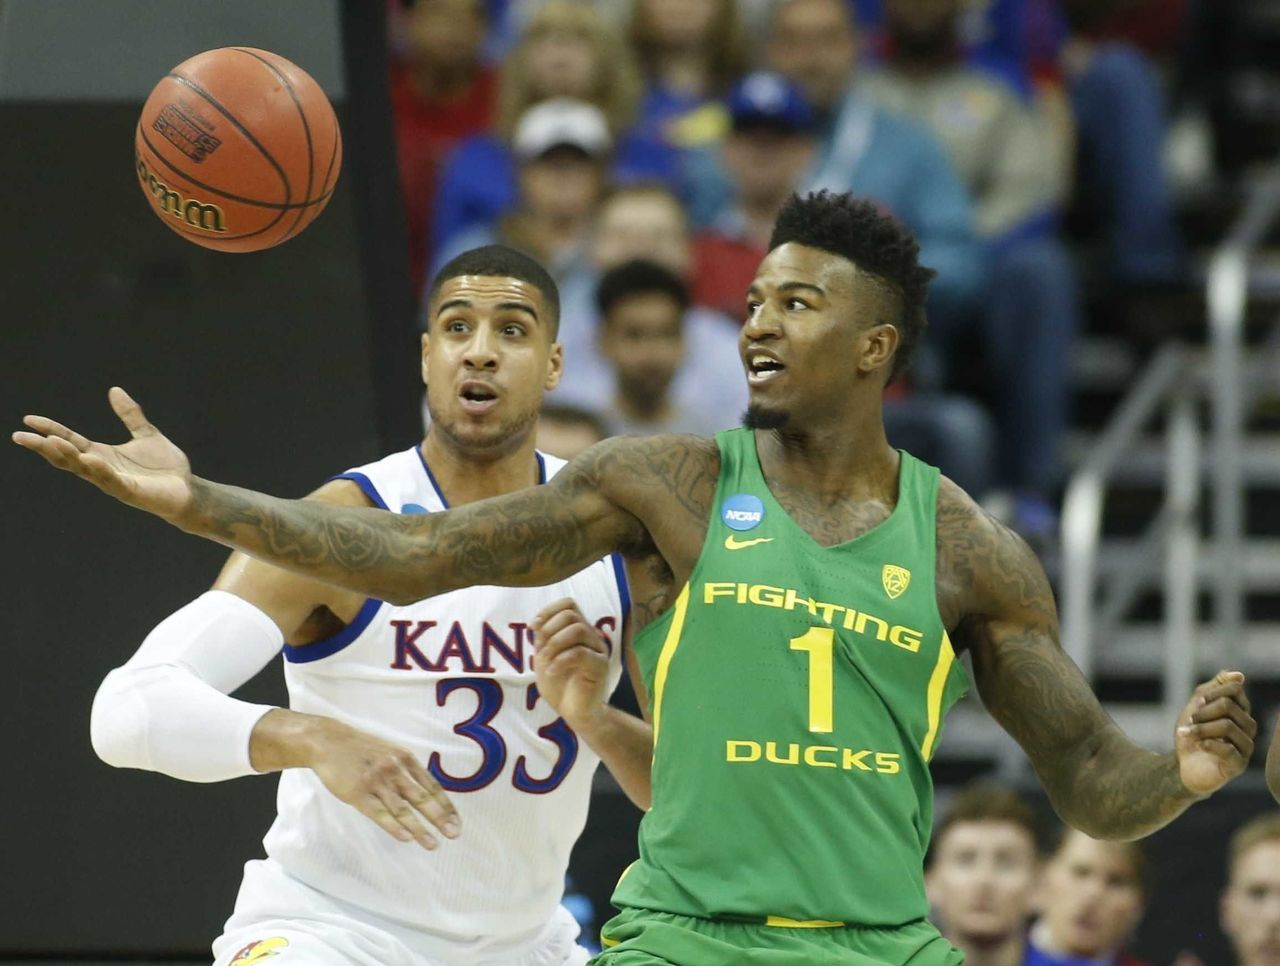 Cropped 2017 03 26t010442z 1948022315 nocid rtrmadp 3 ncaa basketball ncaa tournament midwest regional kansas vs oregon